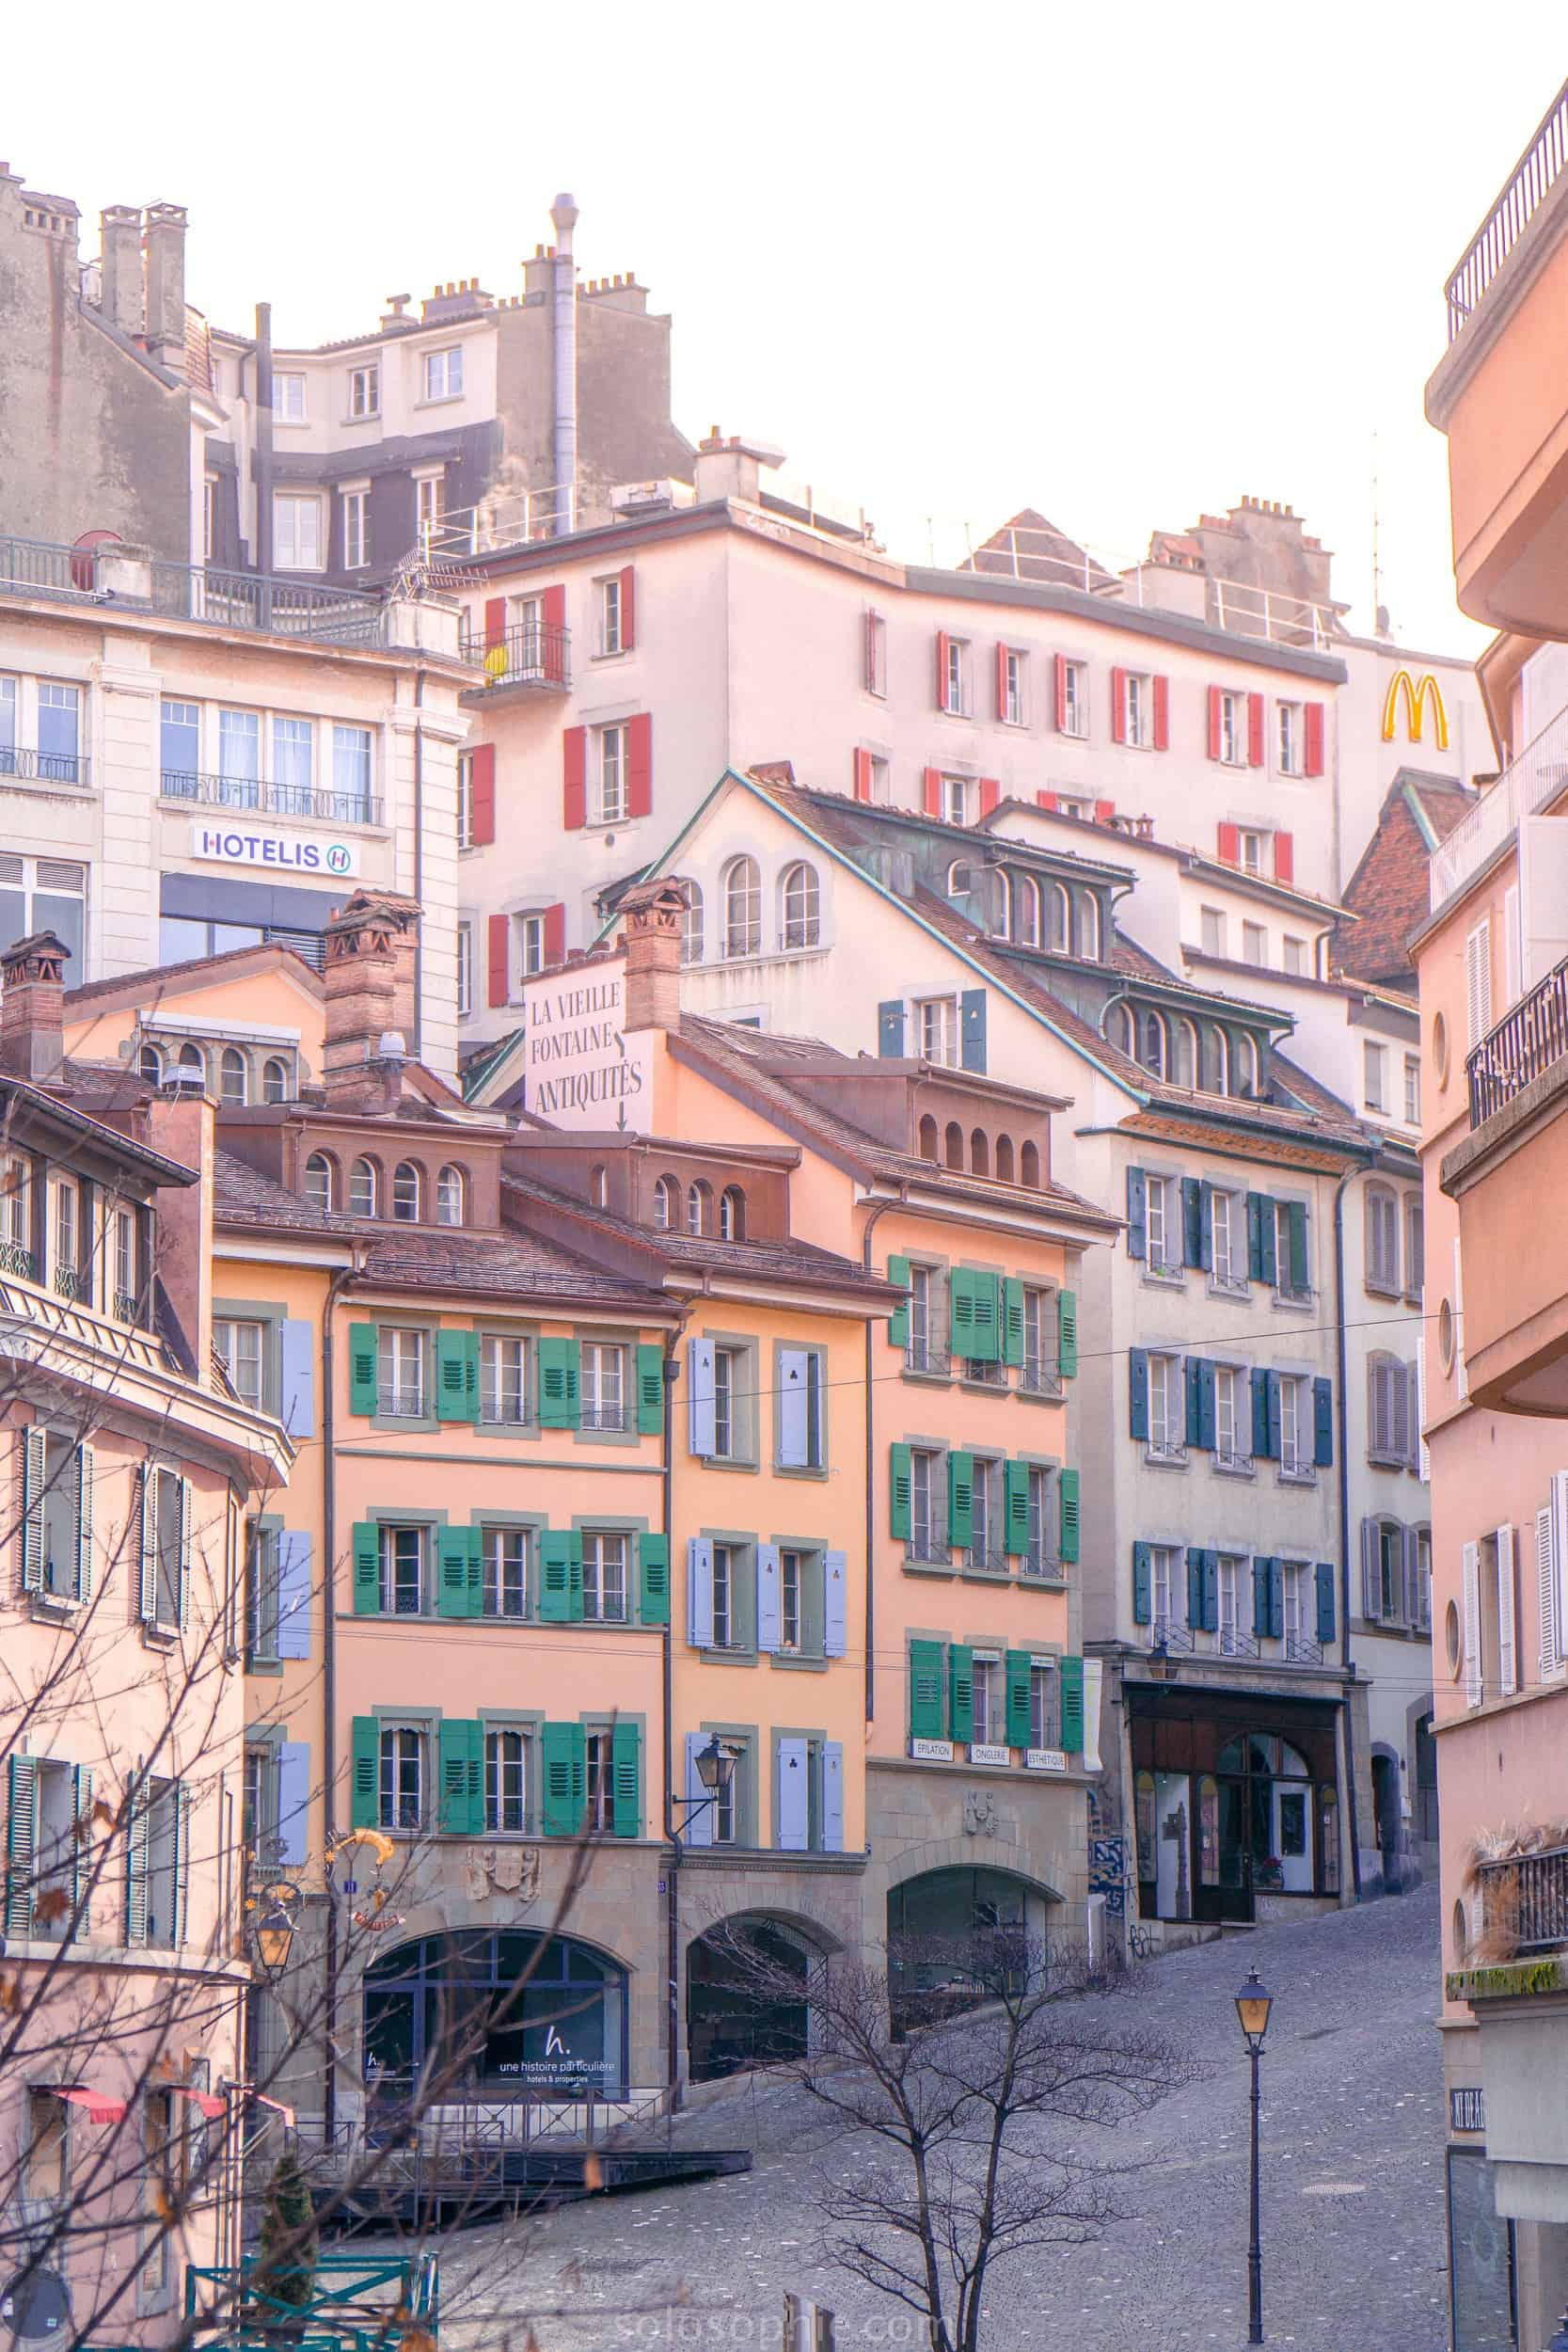 Most beautiful places to see in Switzerland: Swiss destinations to add to your bucket list